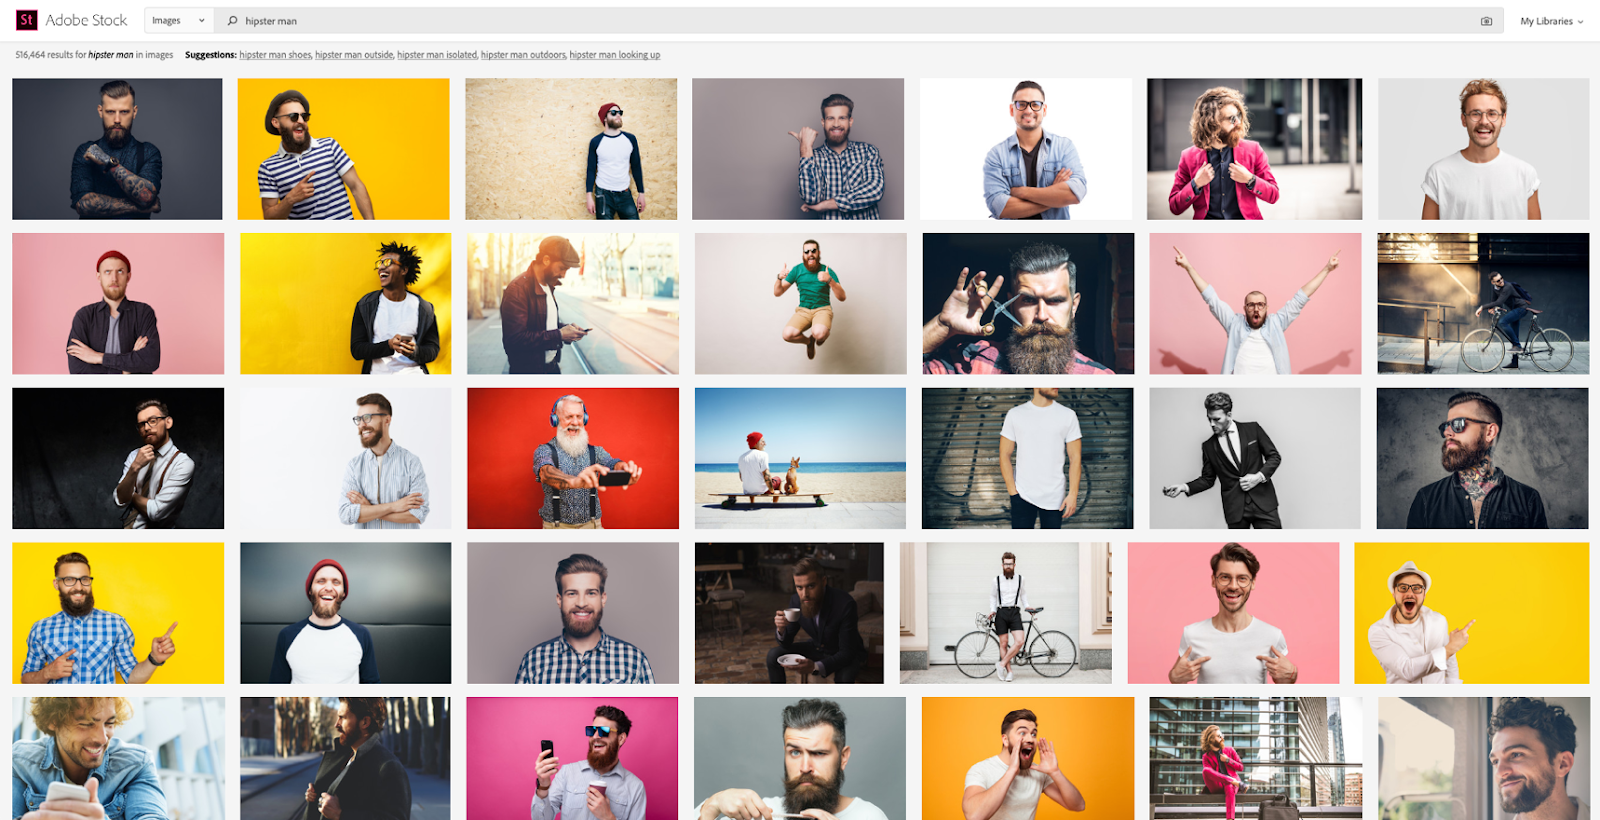 Adobe Stock image search with new ranking methodology.